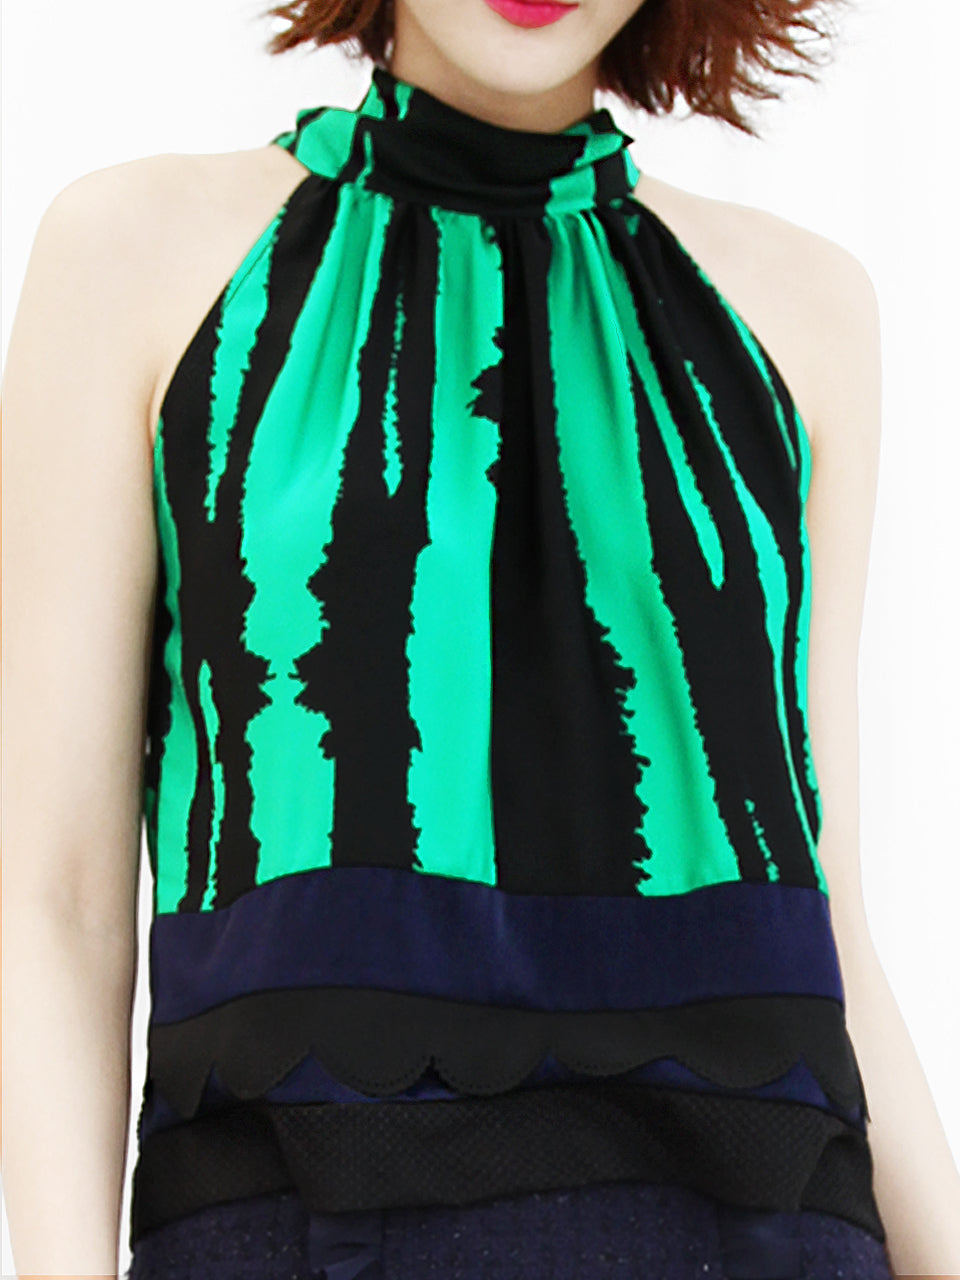 Surprise Sale! Green-Black Prints Scallop Patched Layer Edge Halter Top